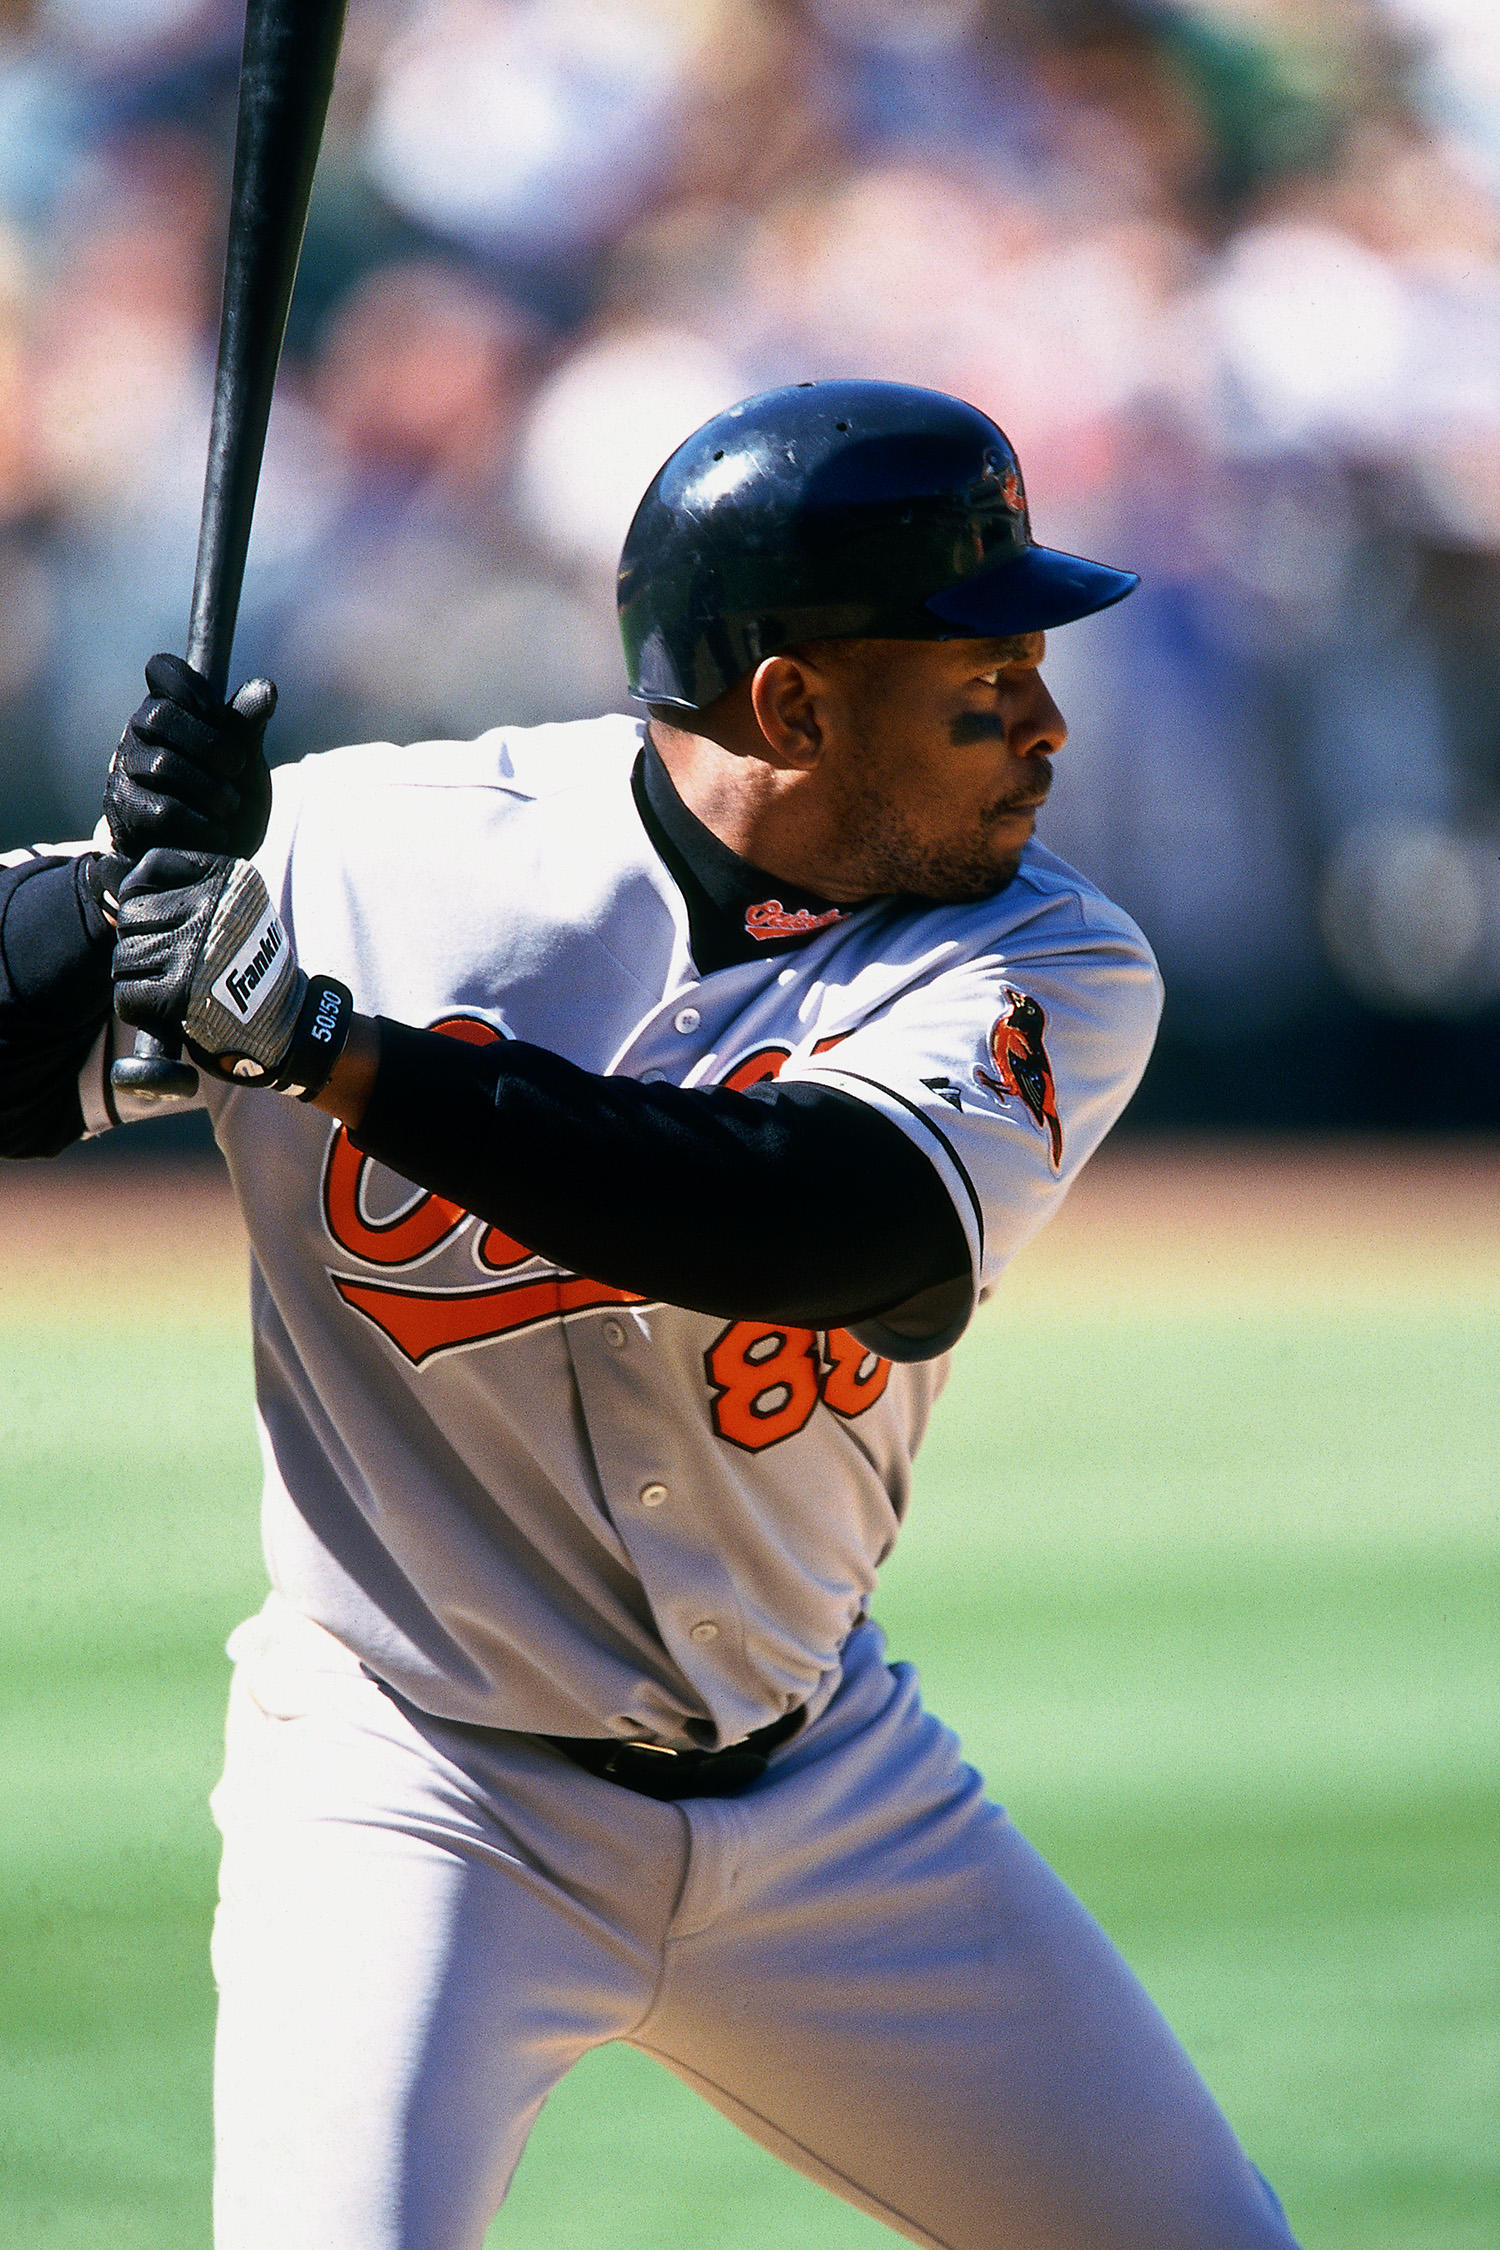 After playing for the Chicago White Sox in 1997 and 1998, Belle became a free agent and signed a five-year deal with the Orioles worth $65 million – making him the highest paid player in the AL. (Brad Mangin / National Baseball Hall of Fame)